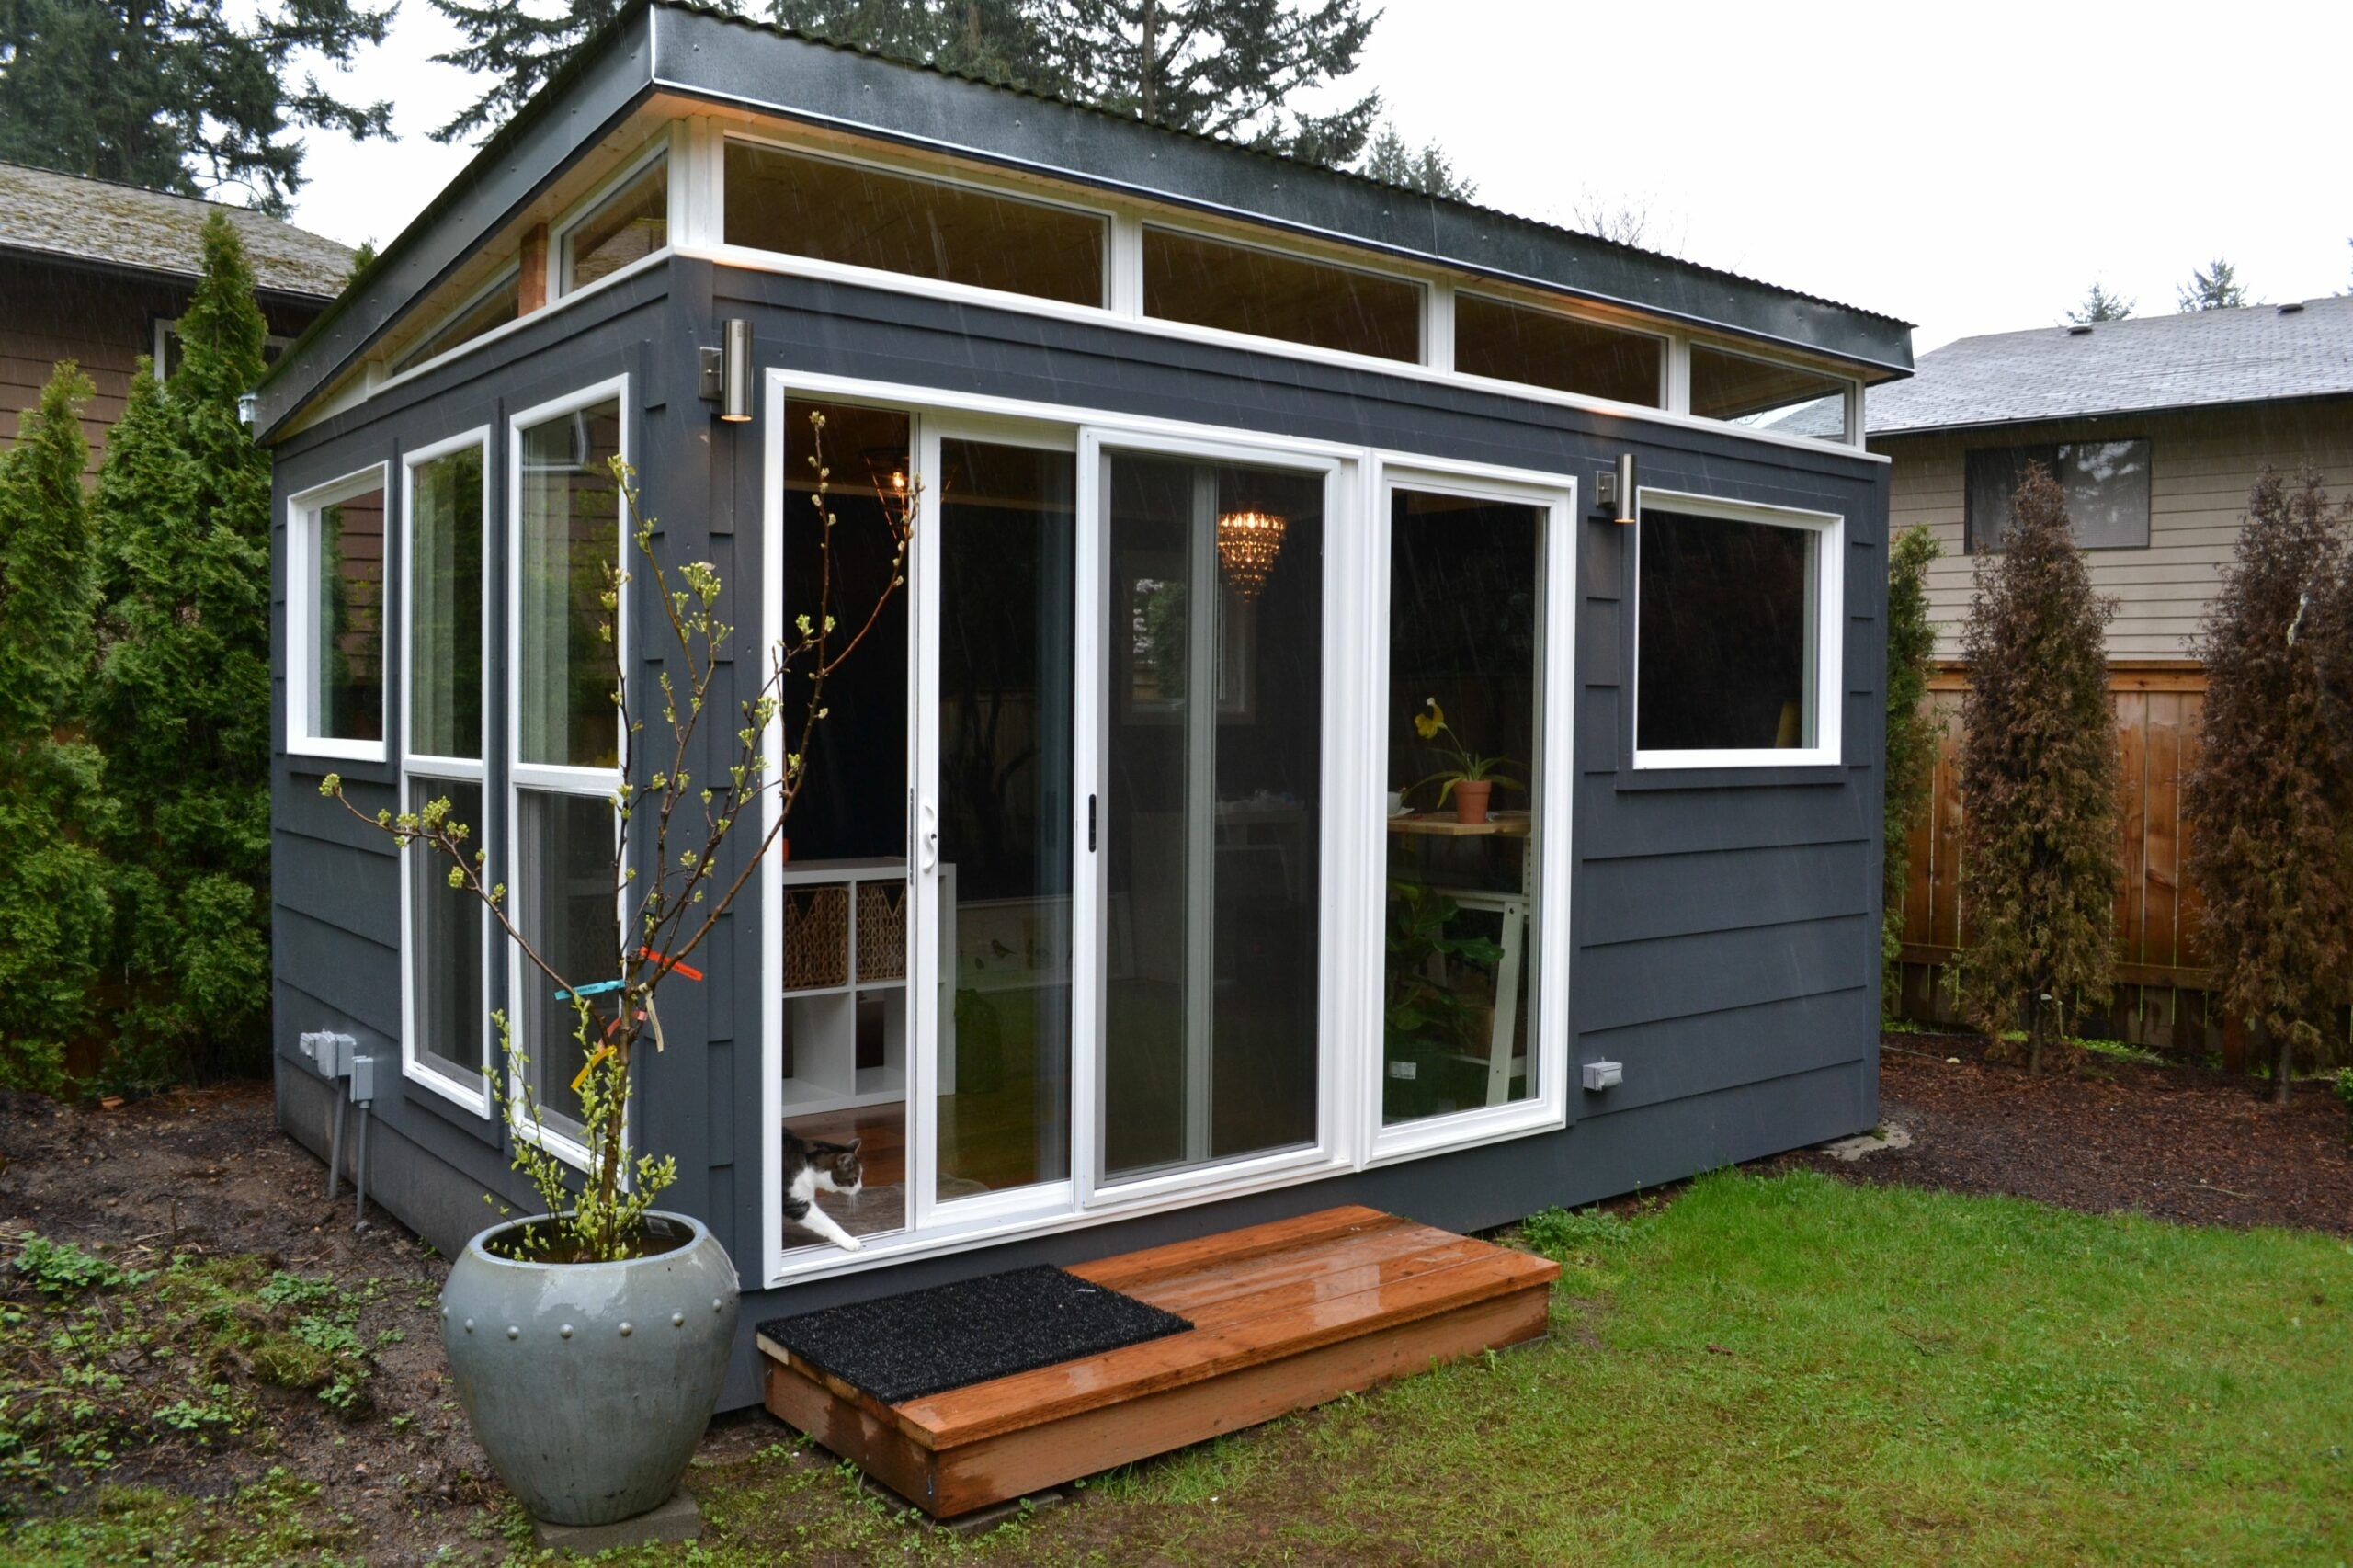 Introducing The Coolest New Way To Work At Home: Shedquarters ...